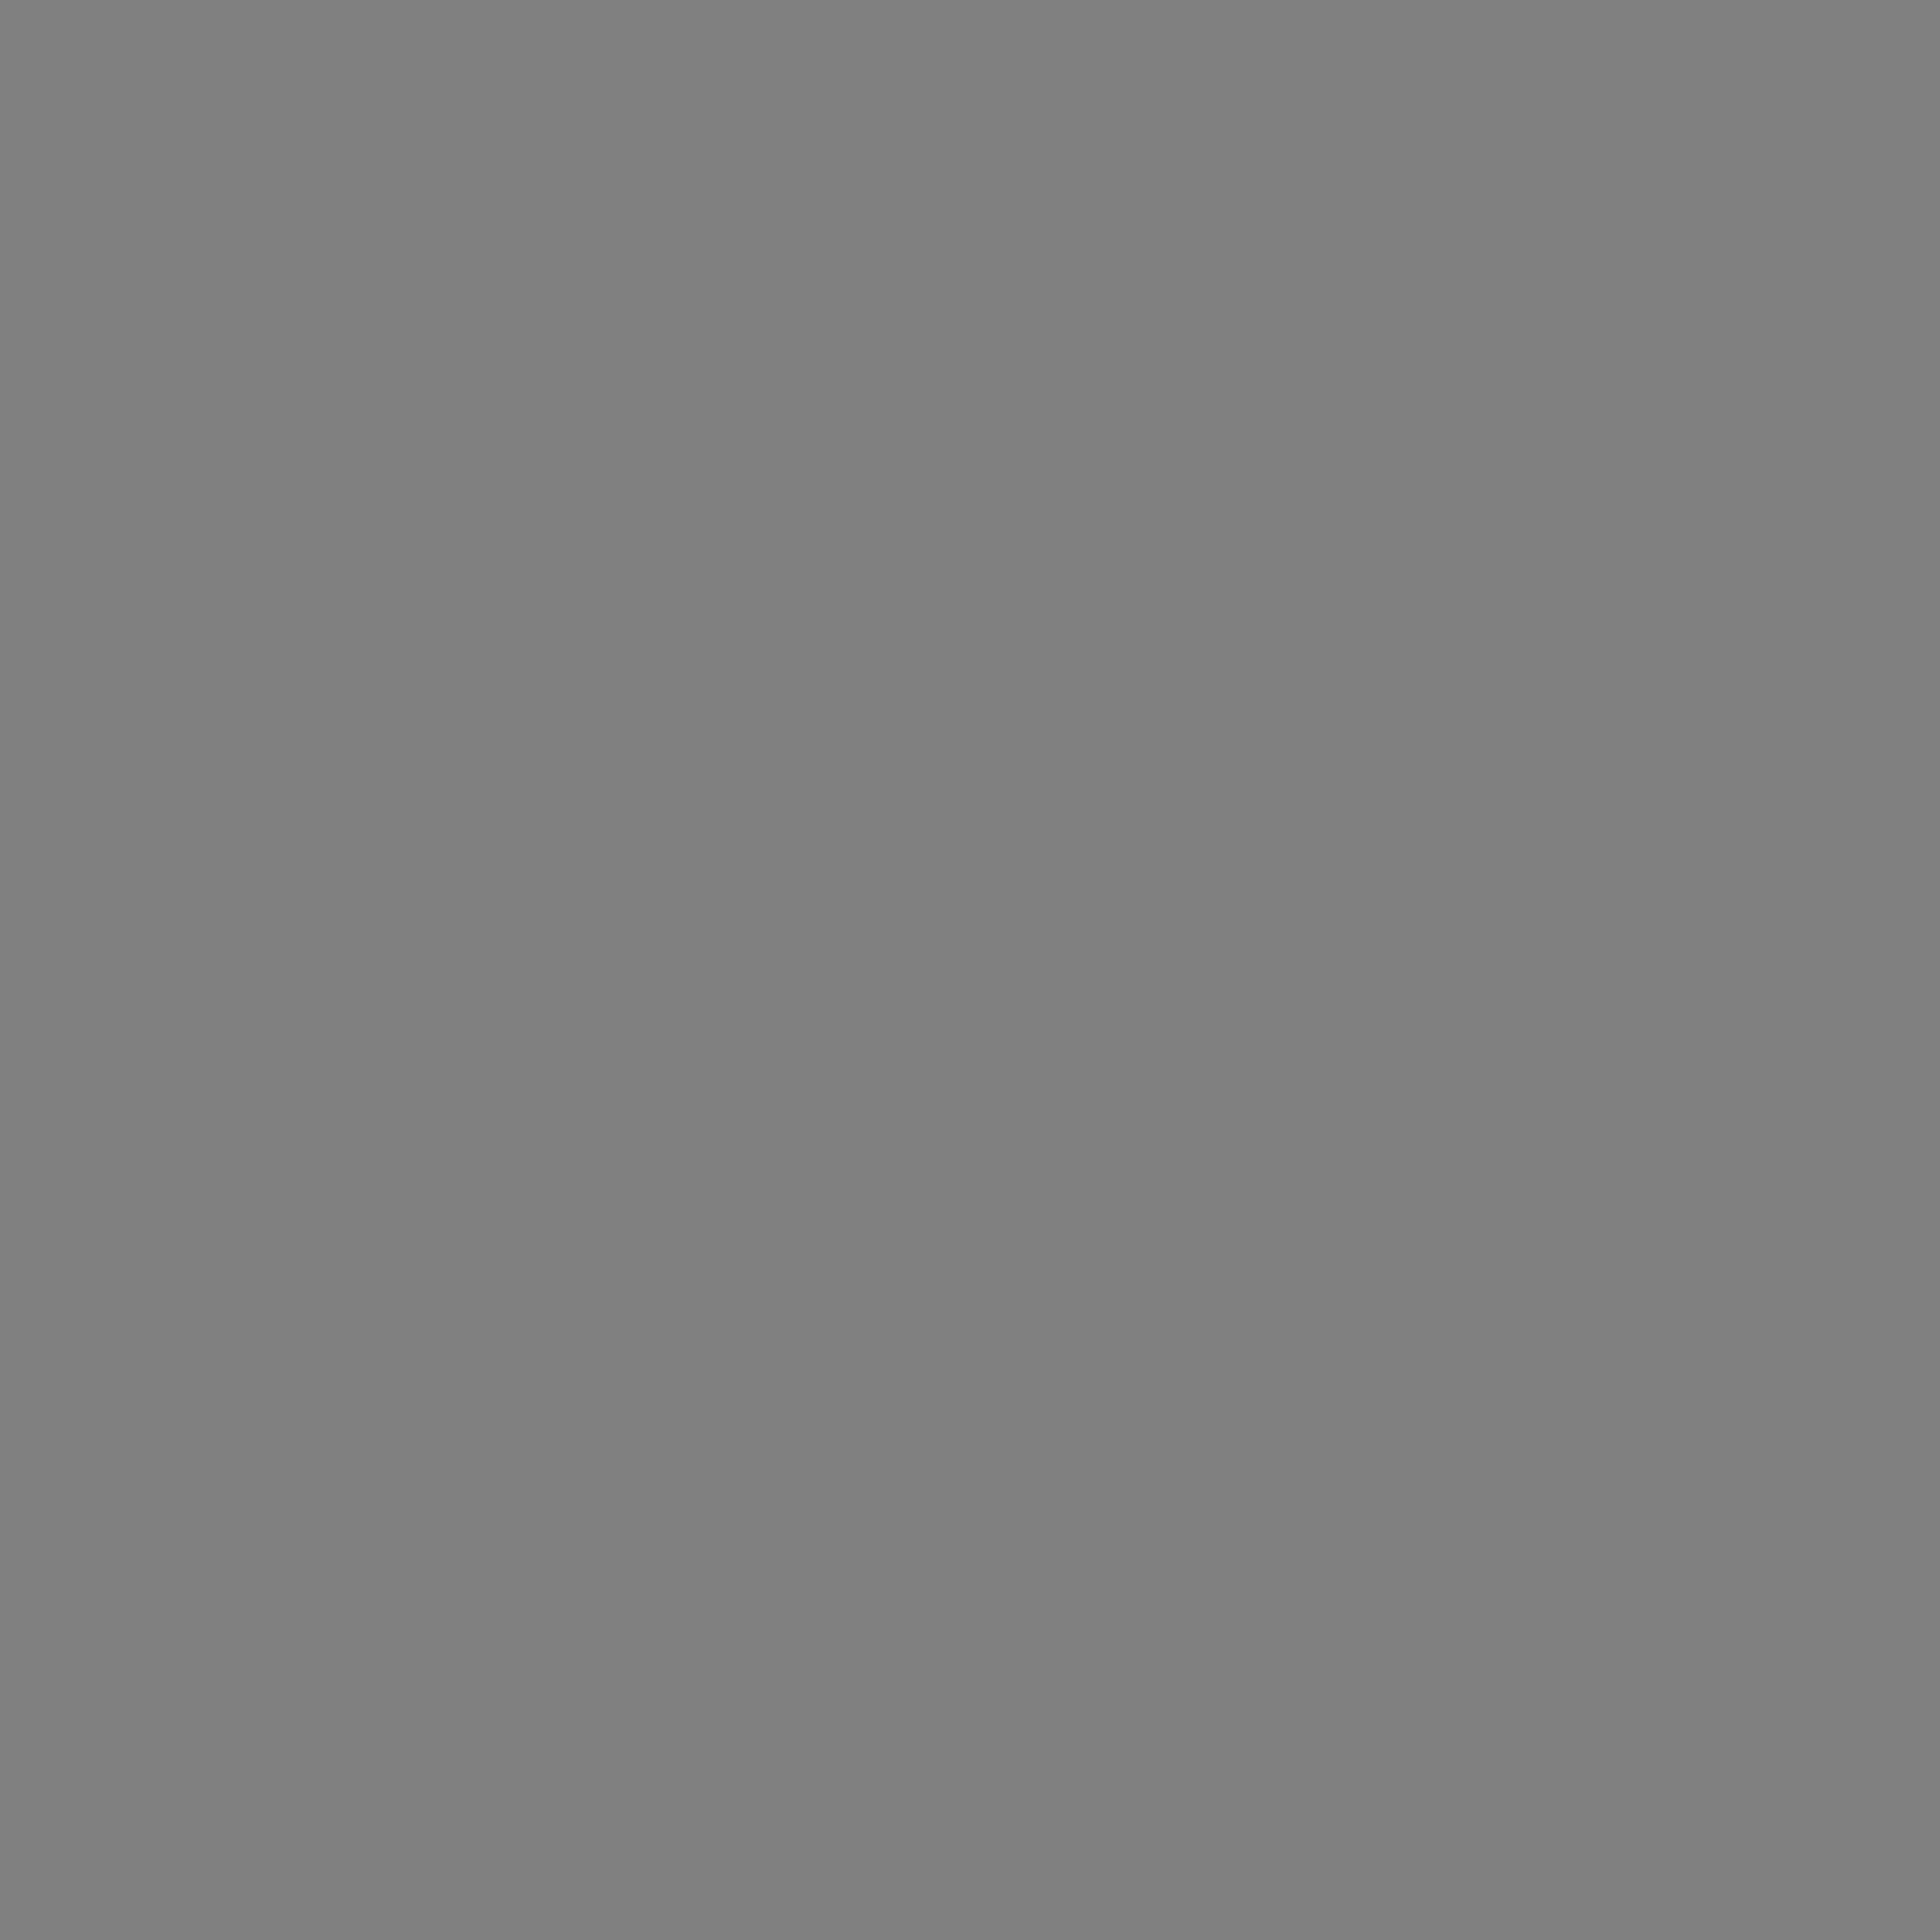 2732x2732 Trolley Grey Solid Color Background